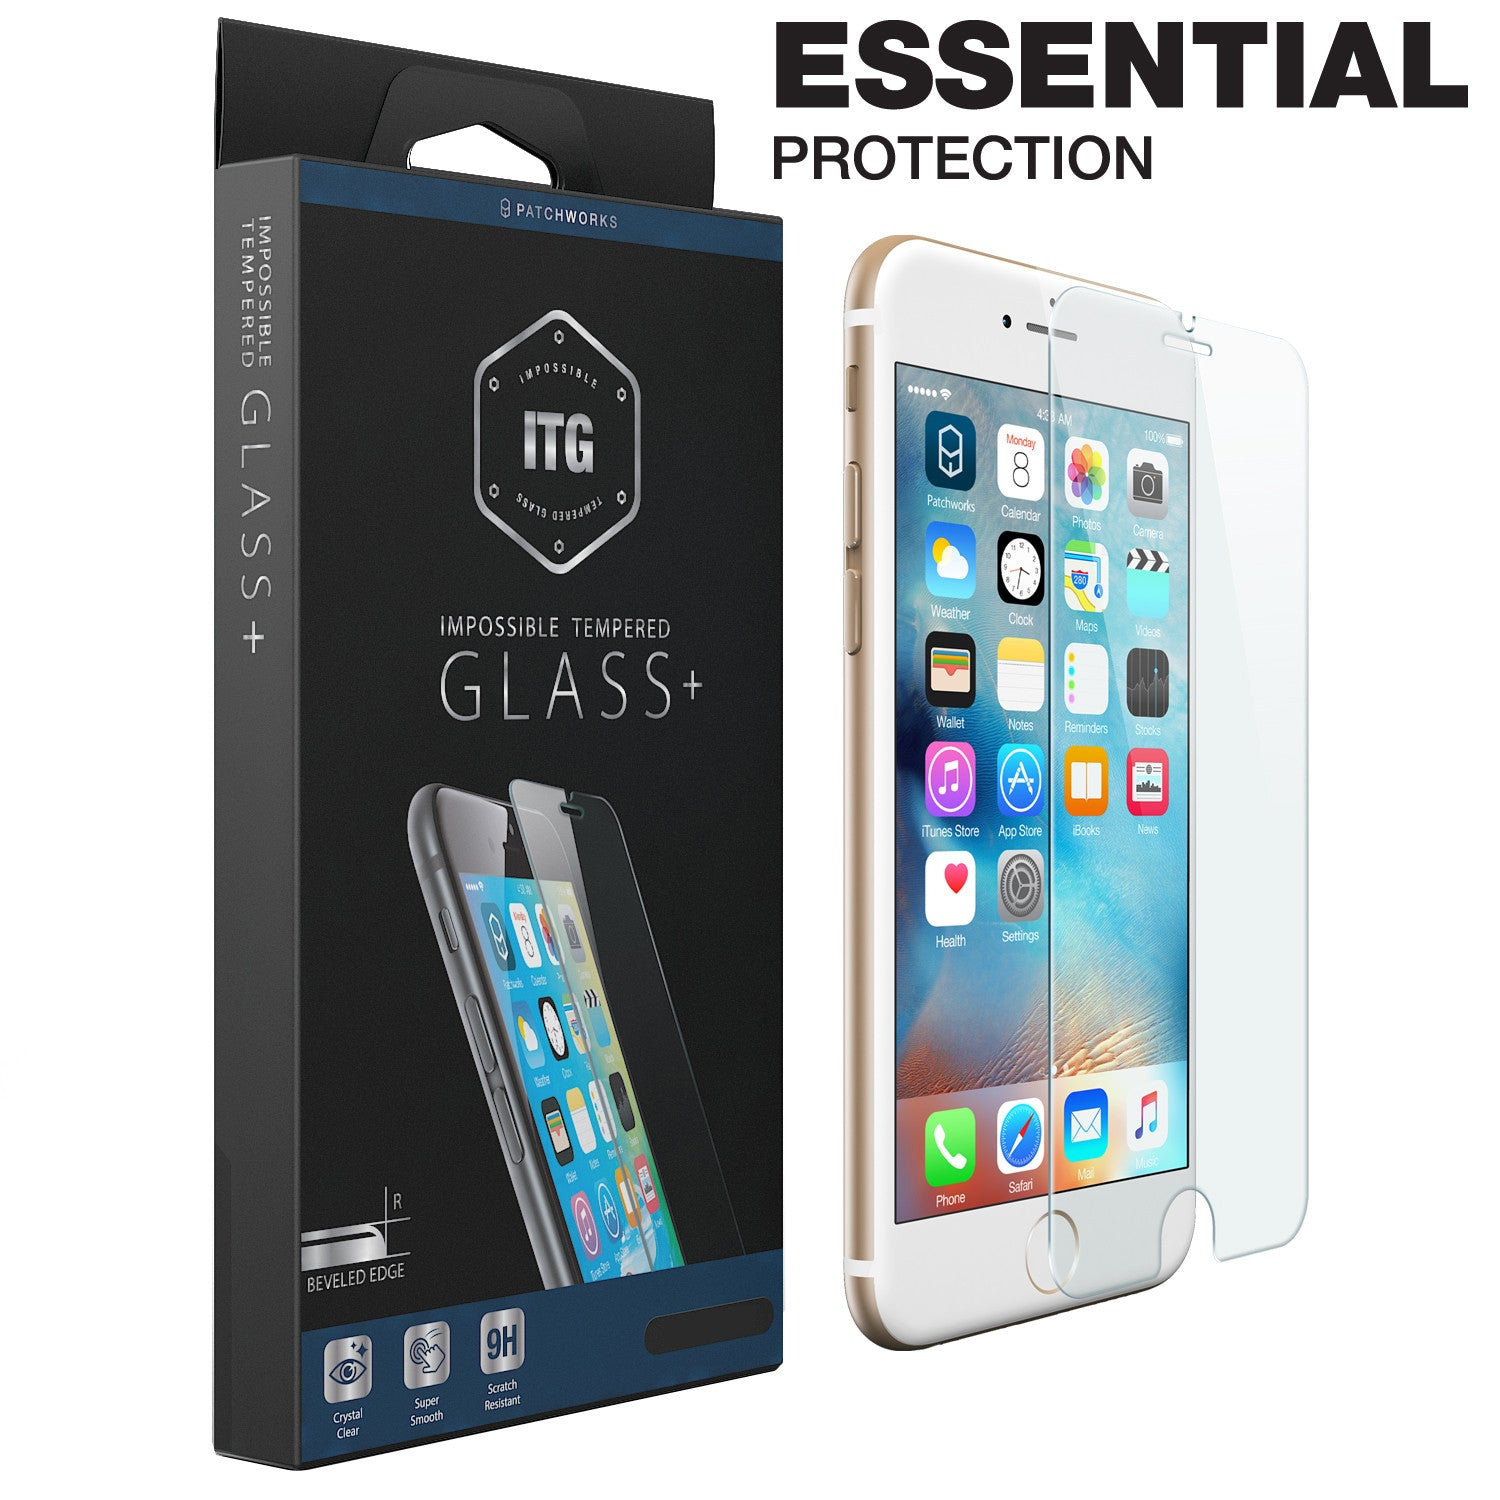 iPhone 6s Plus / 6 Plus Glass Screen Protector ITG PLUS ESSENTIAL - Patchworks Global Inc - 1